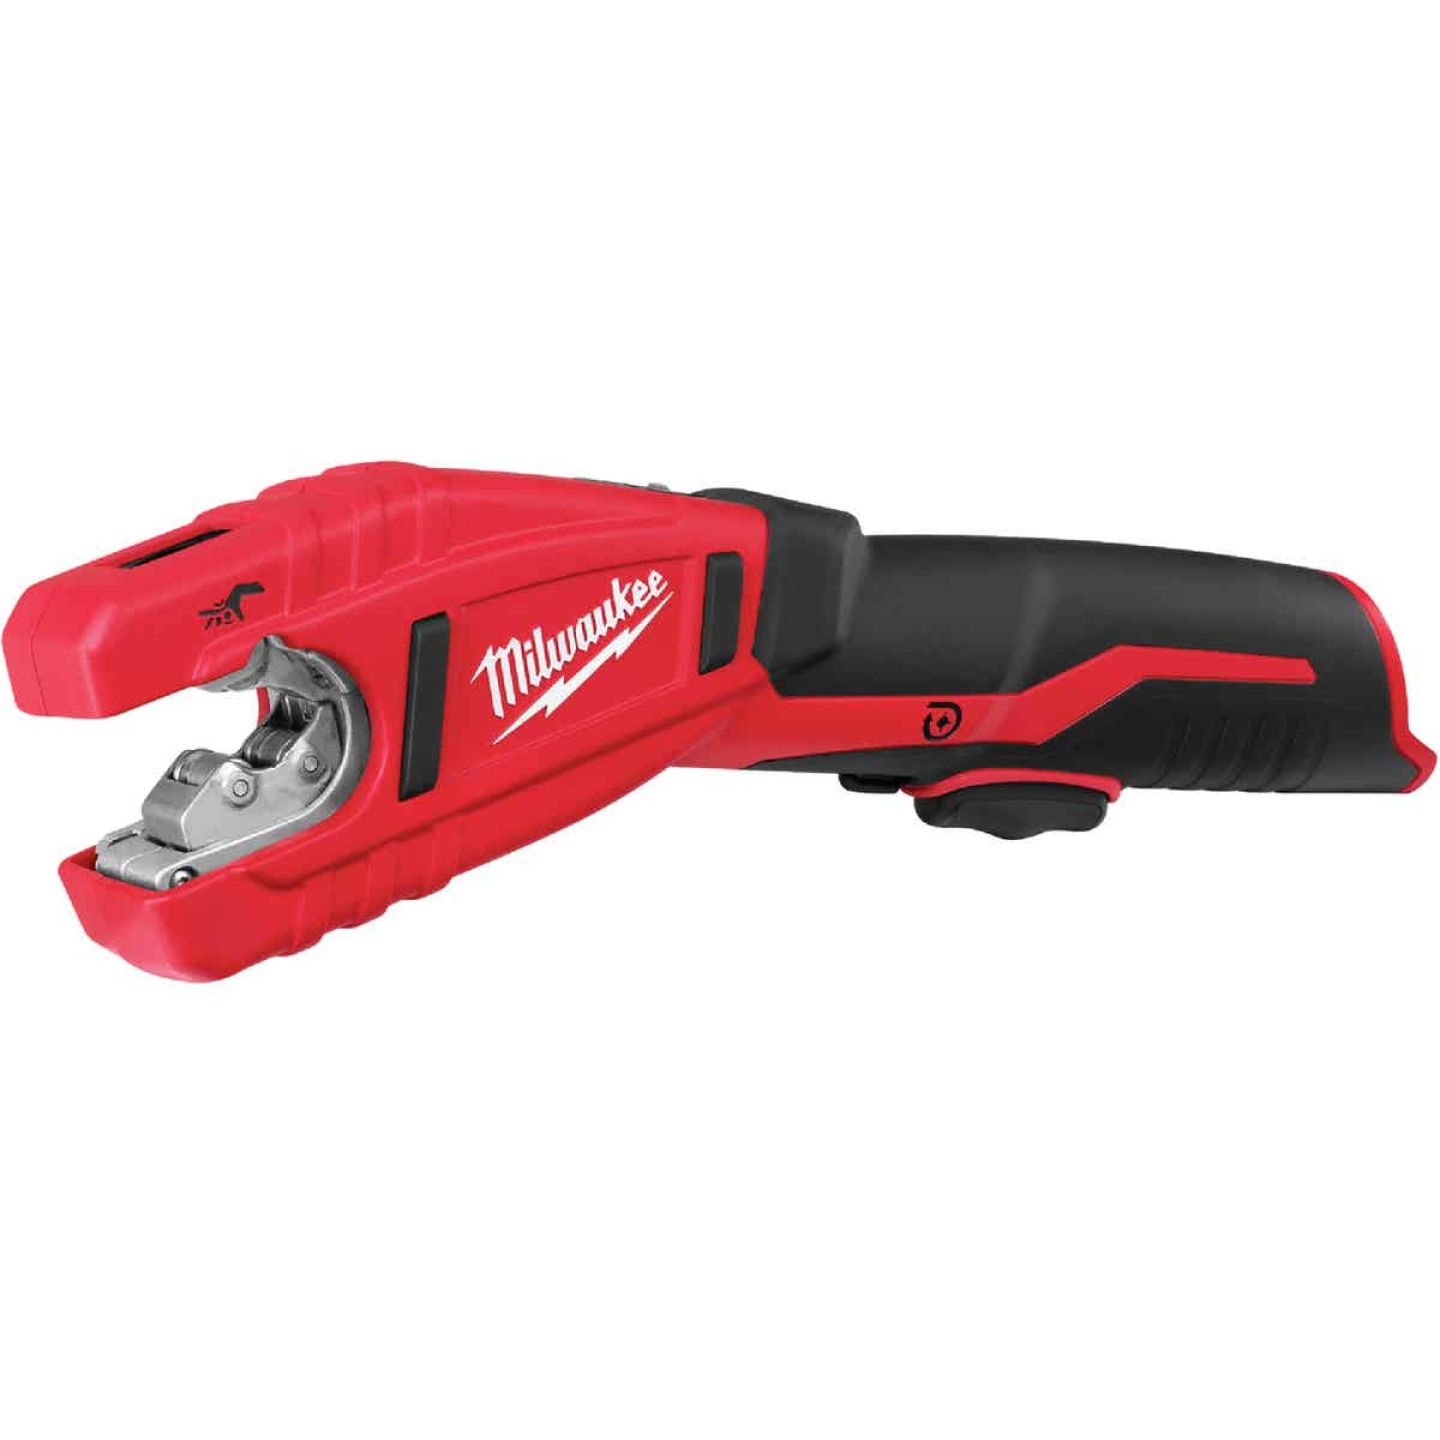 Milwaukee M12 12 Volt Lithium-Ion Copper Cordless Pipe Cutter Kit Image 9